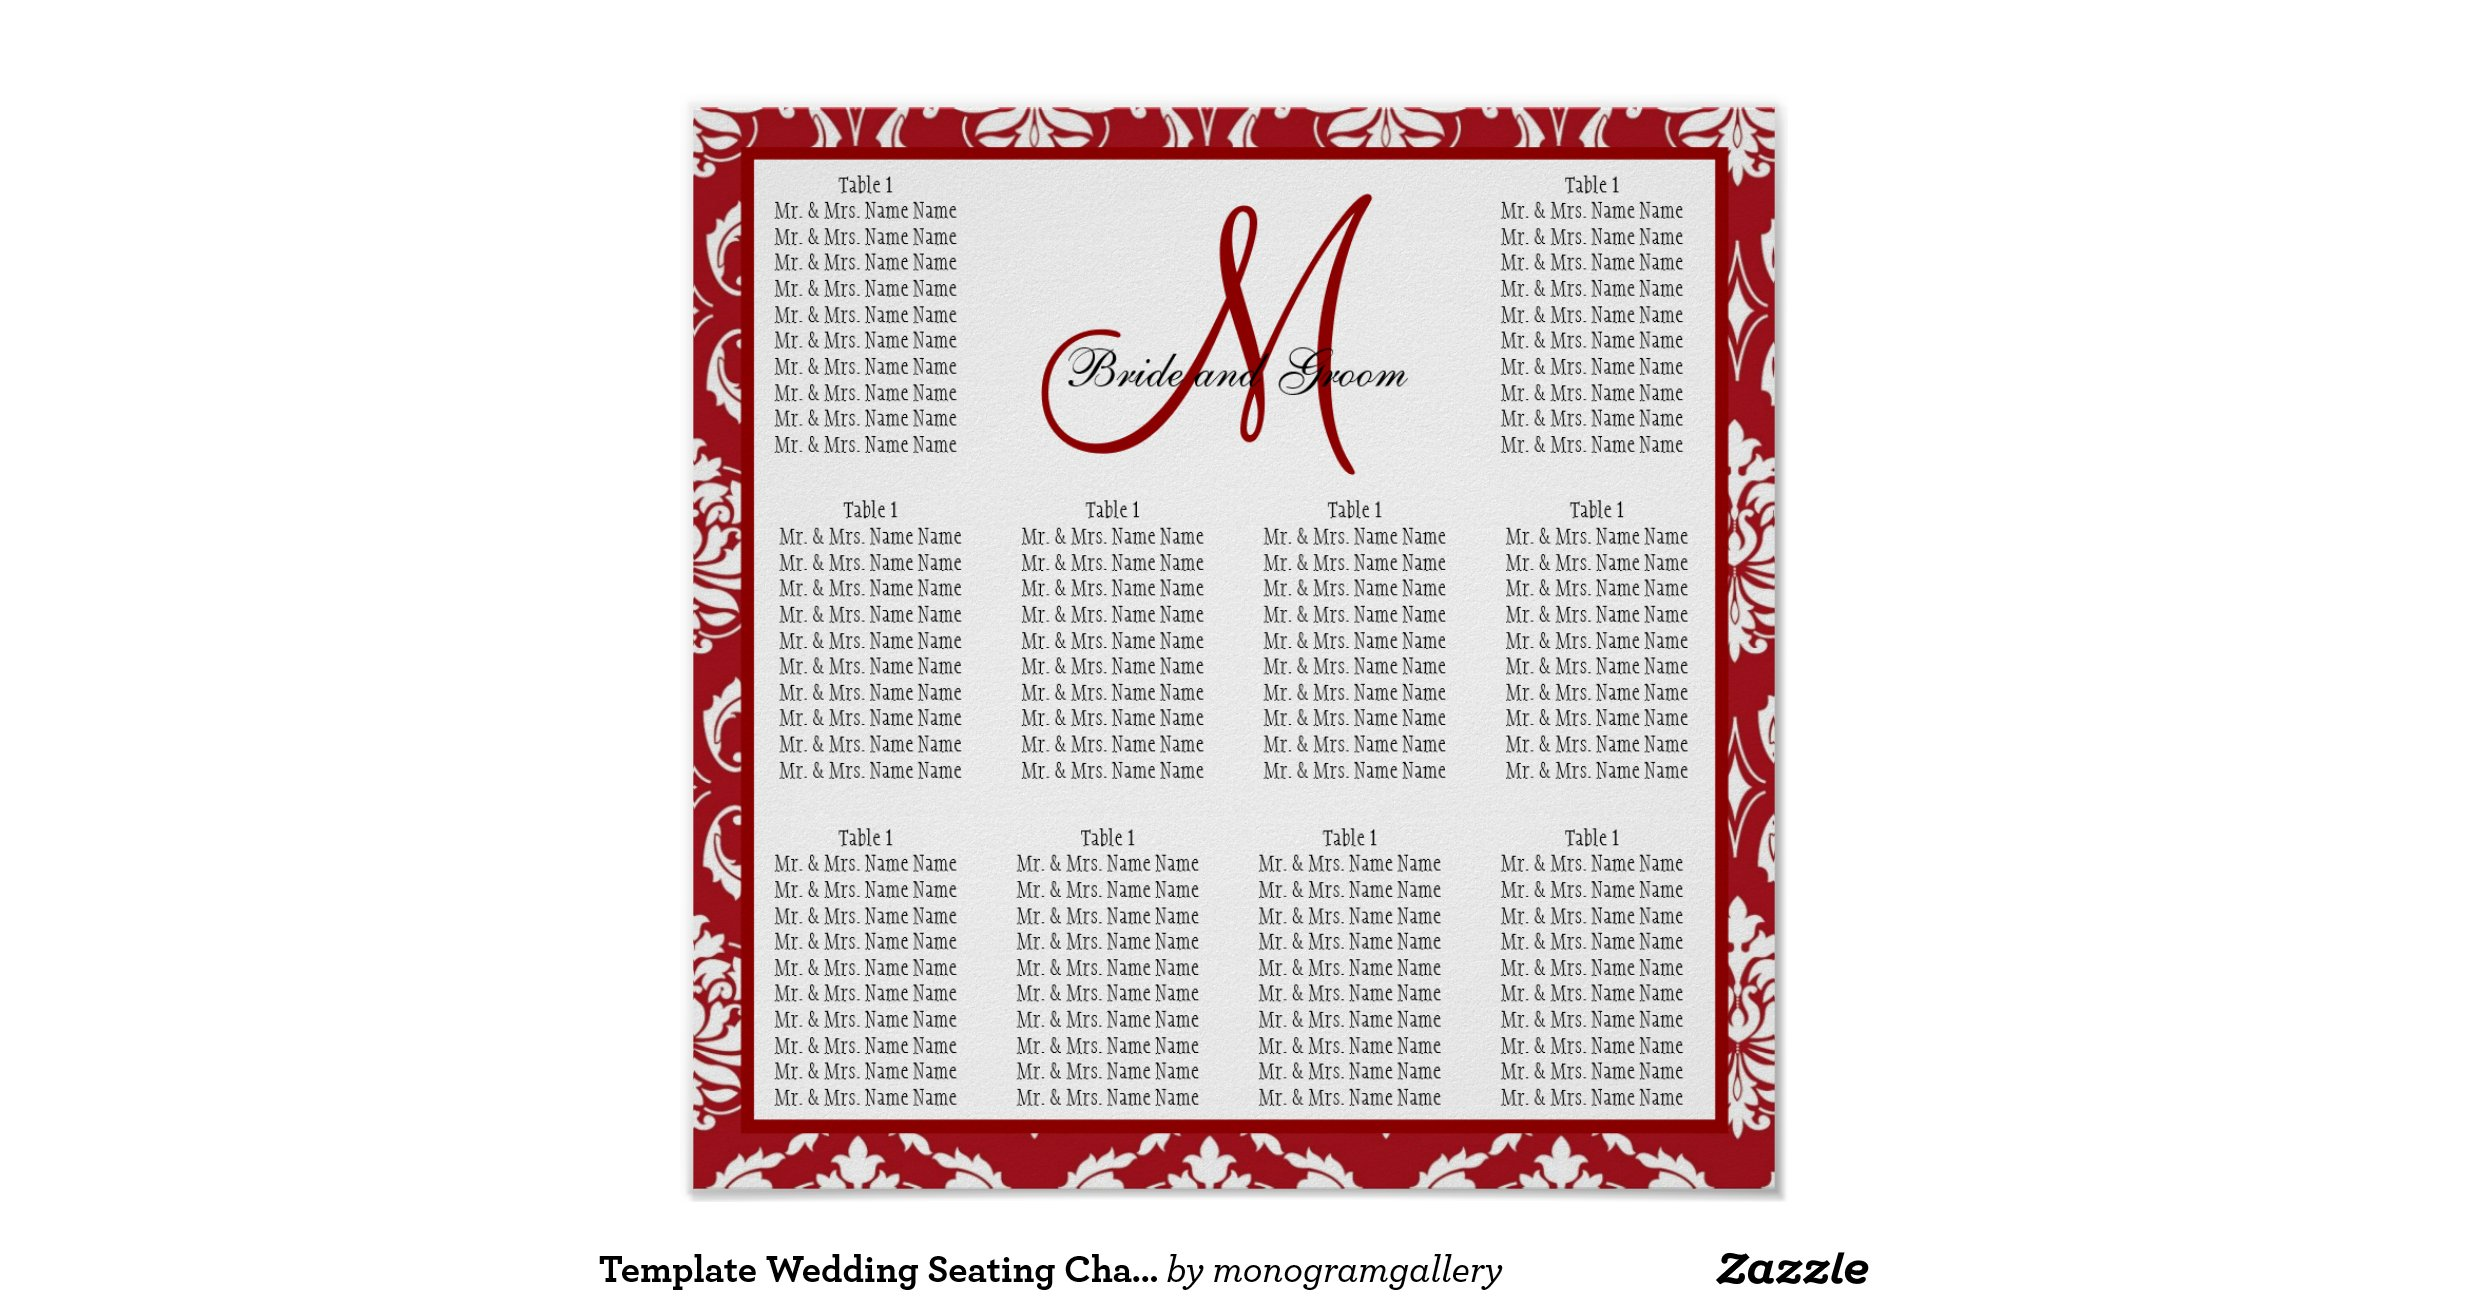 Table plan wedding template purchasing flow chart church seating plan template brokeasshomecom template wedding seating chart red damask r3cff98f845a2419eb36b161c0c0c1003 w2j 8byvr 1200 church pronofoot35fo Image collections